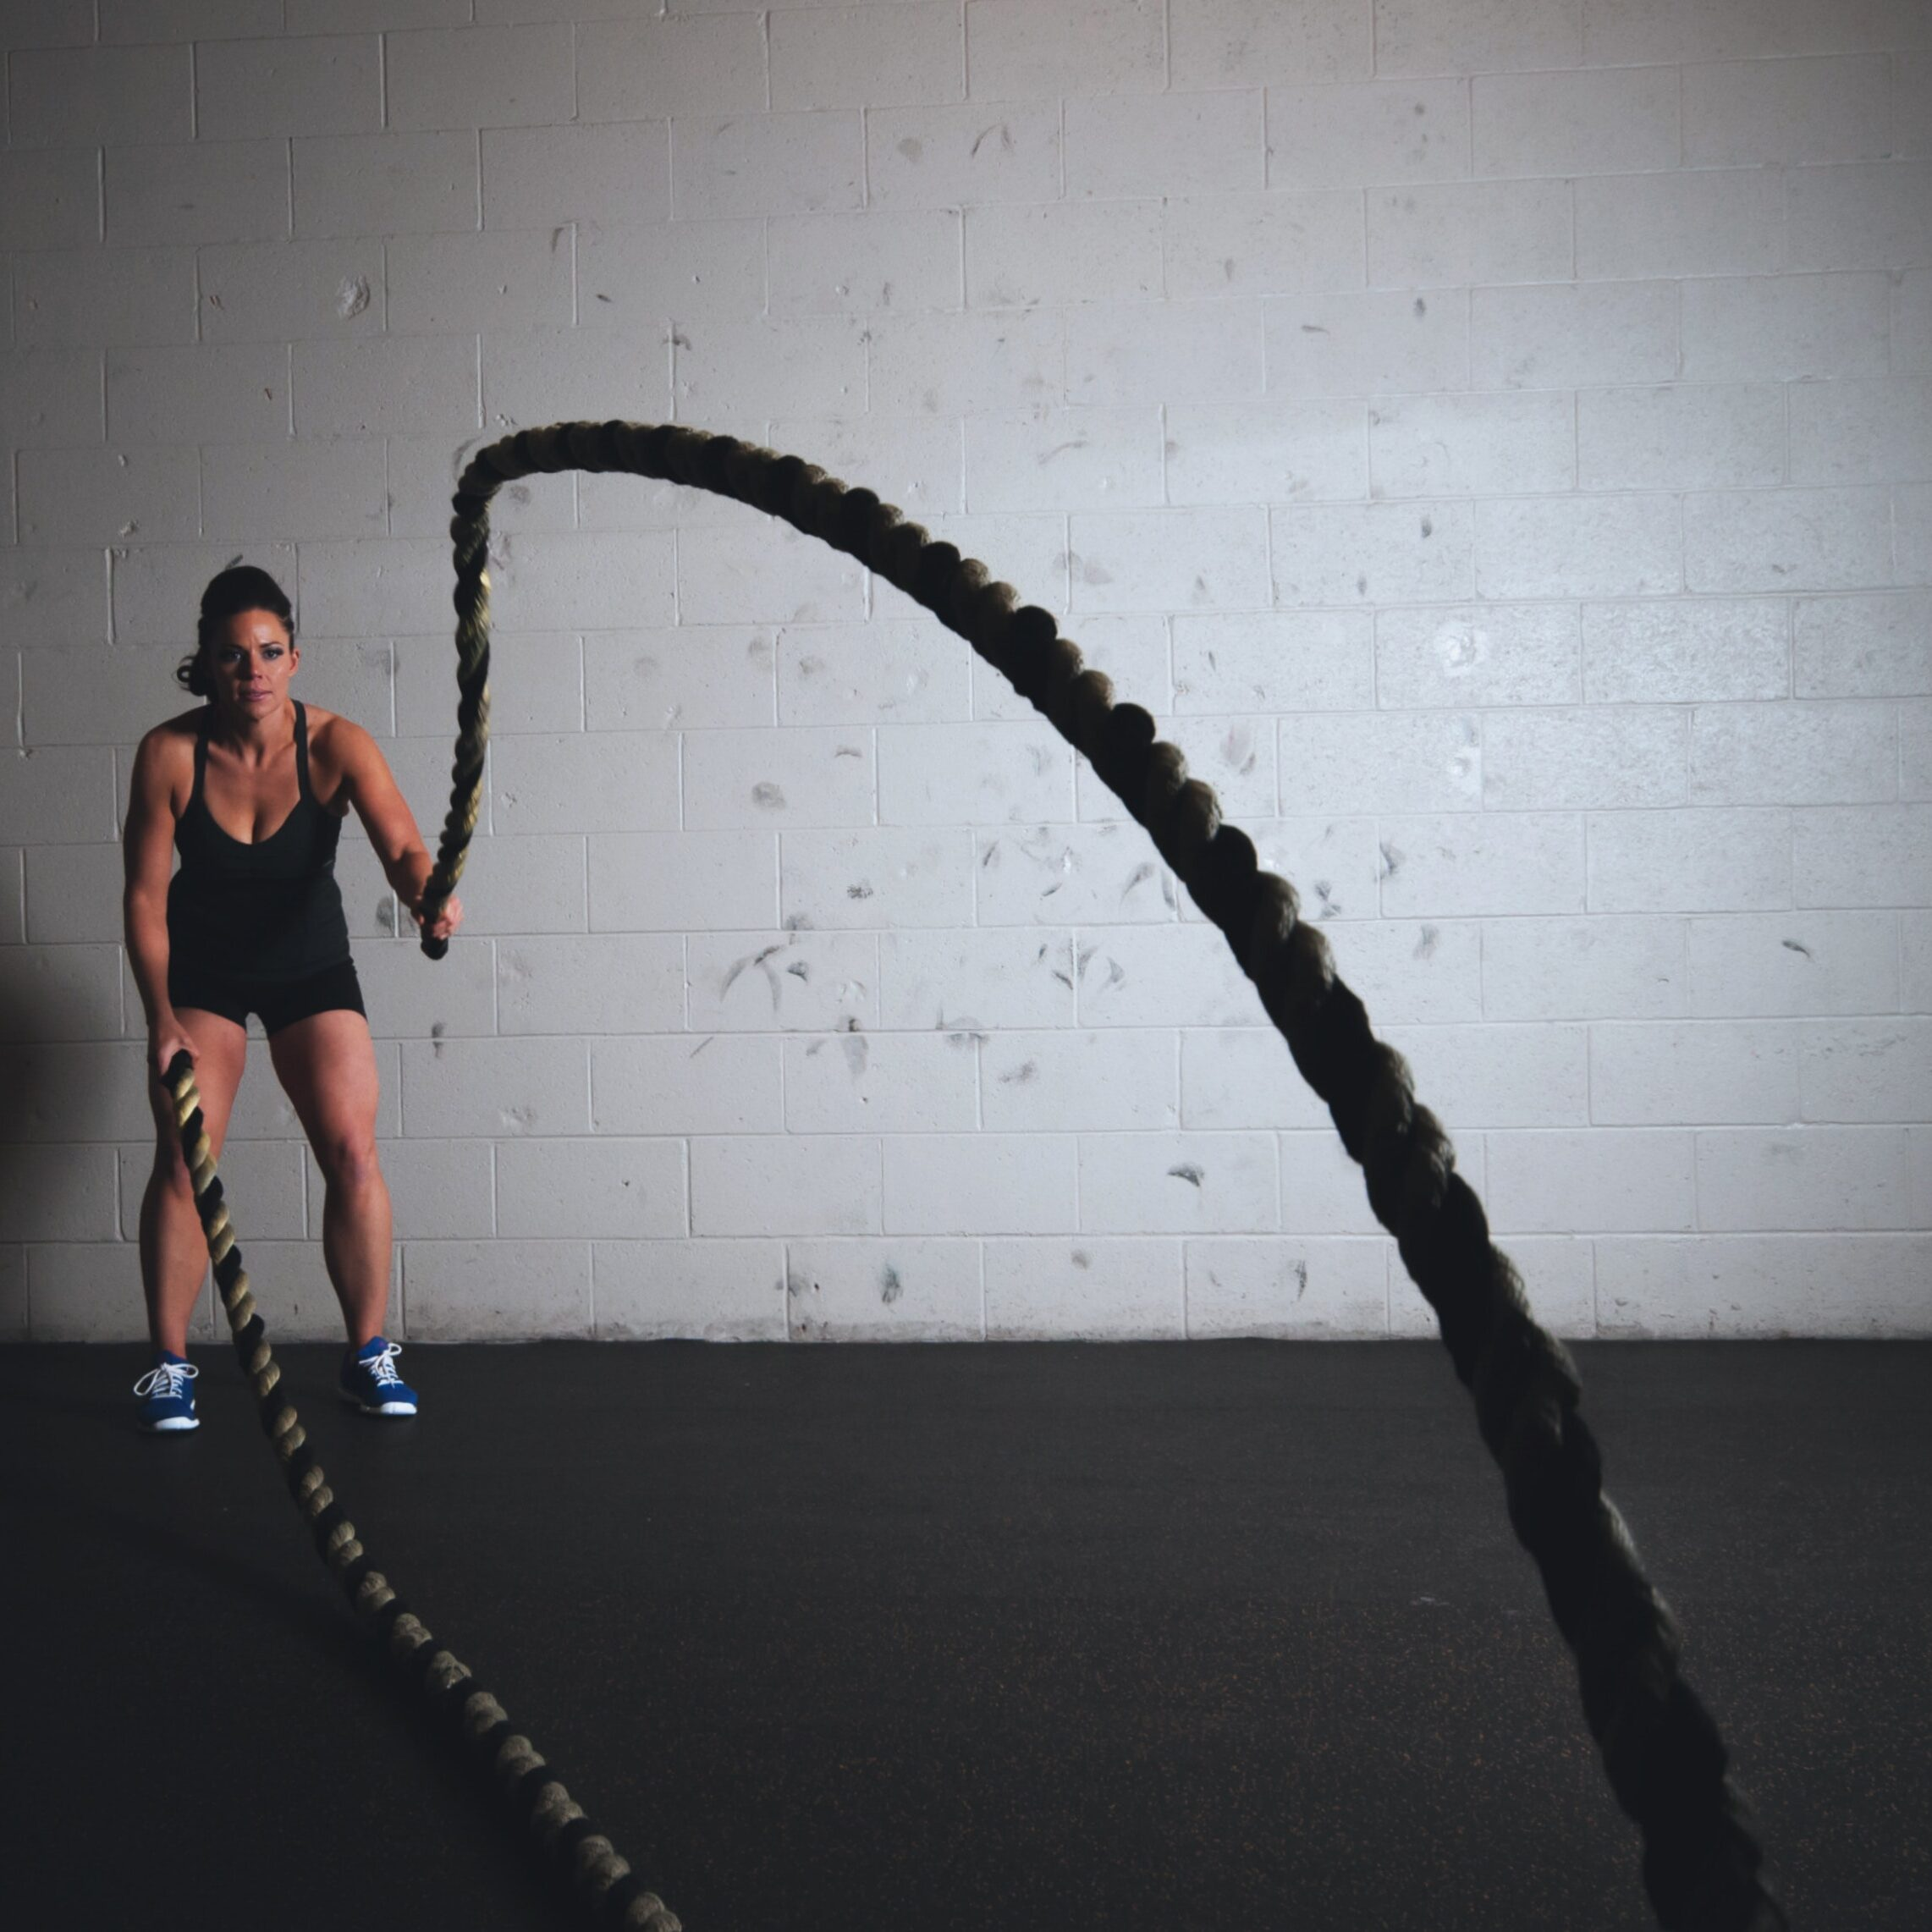 crossfit-exercise-fitness-28080